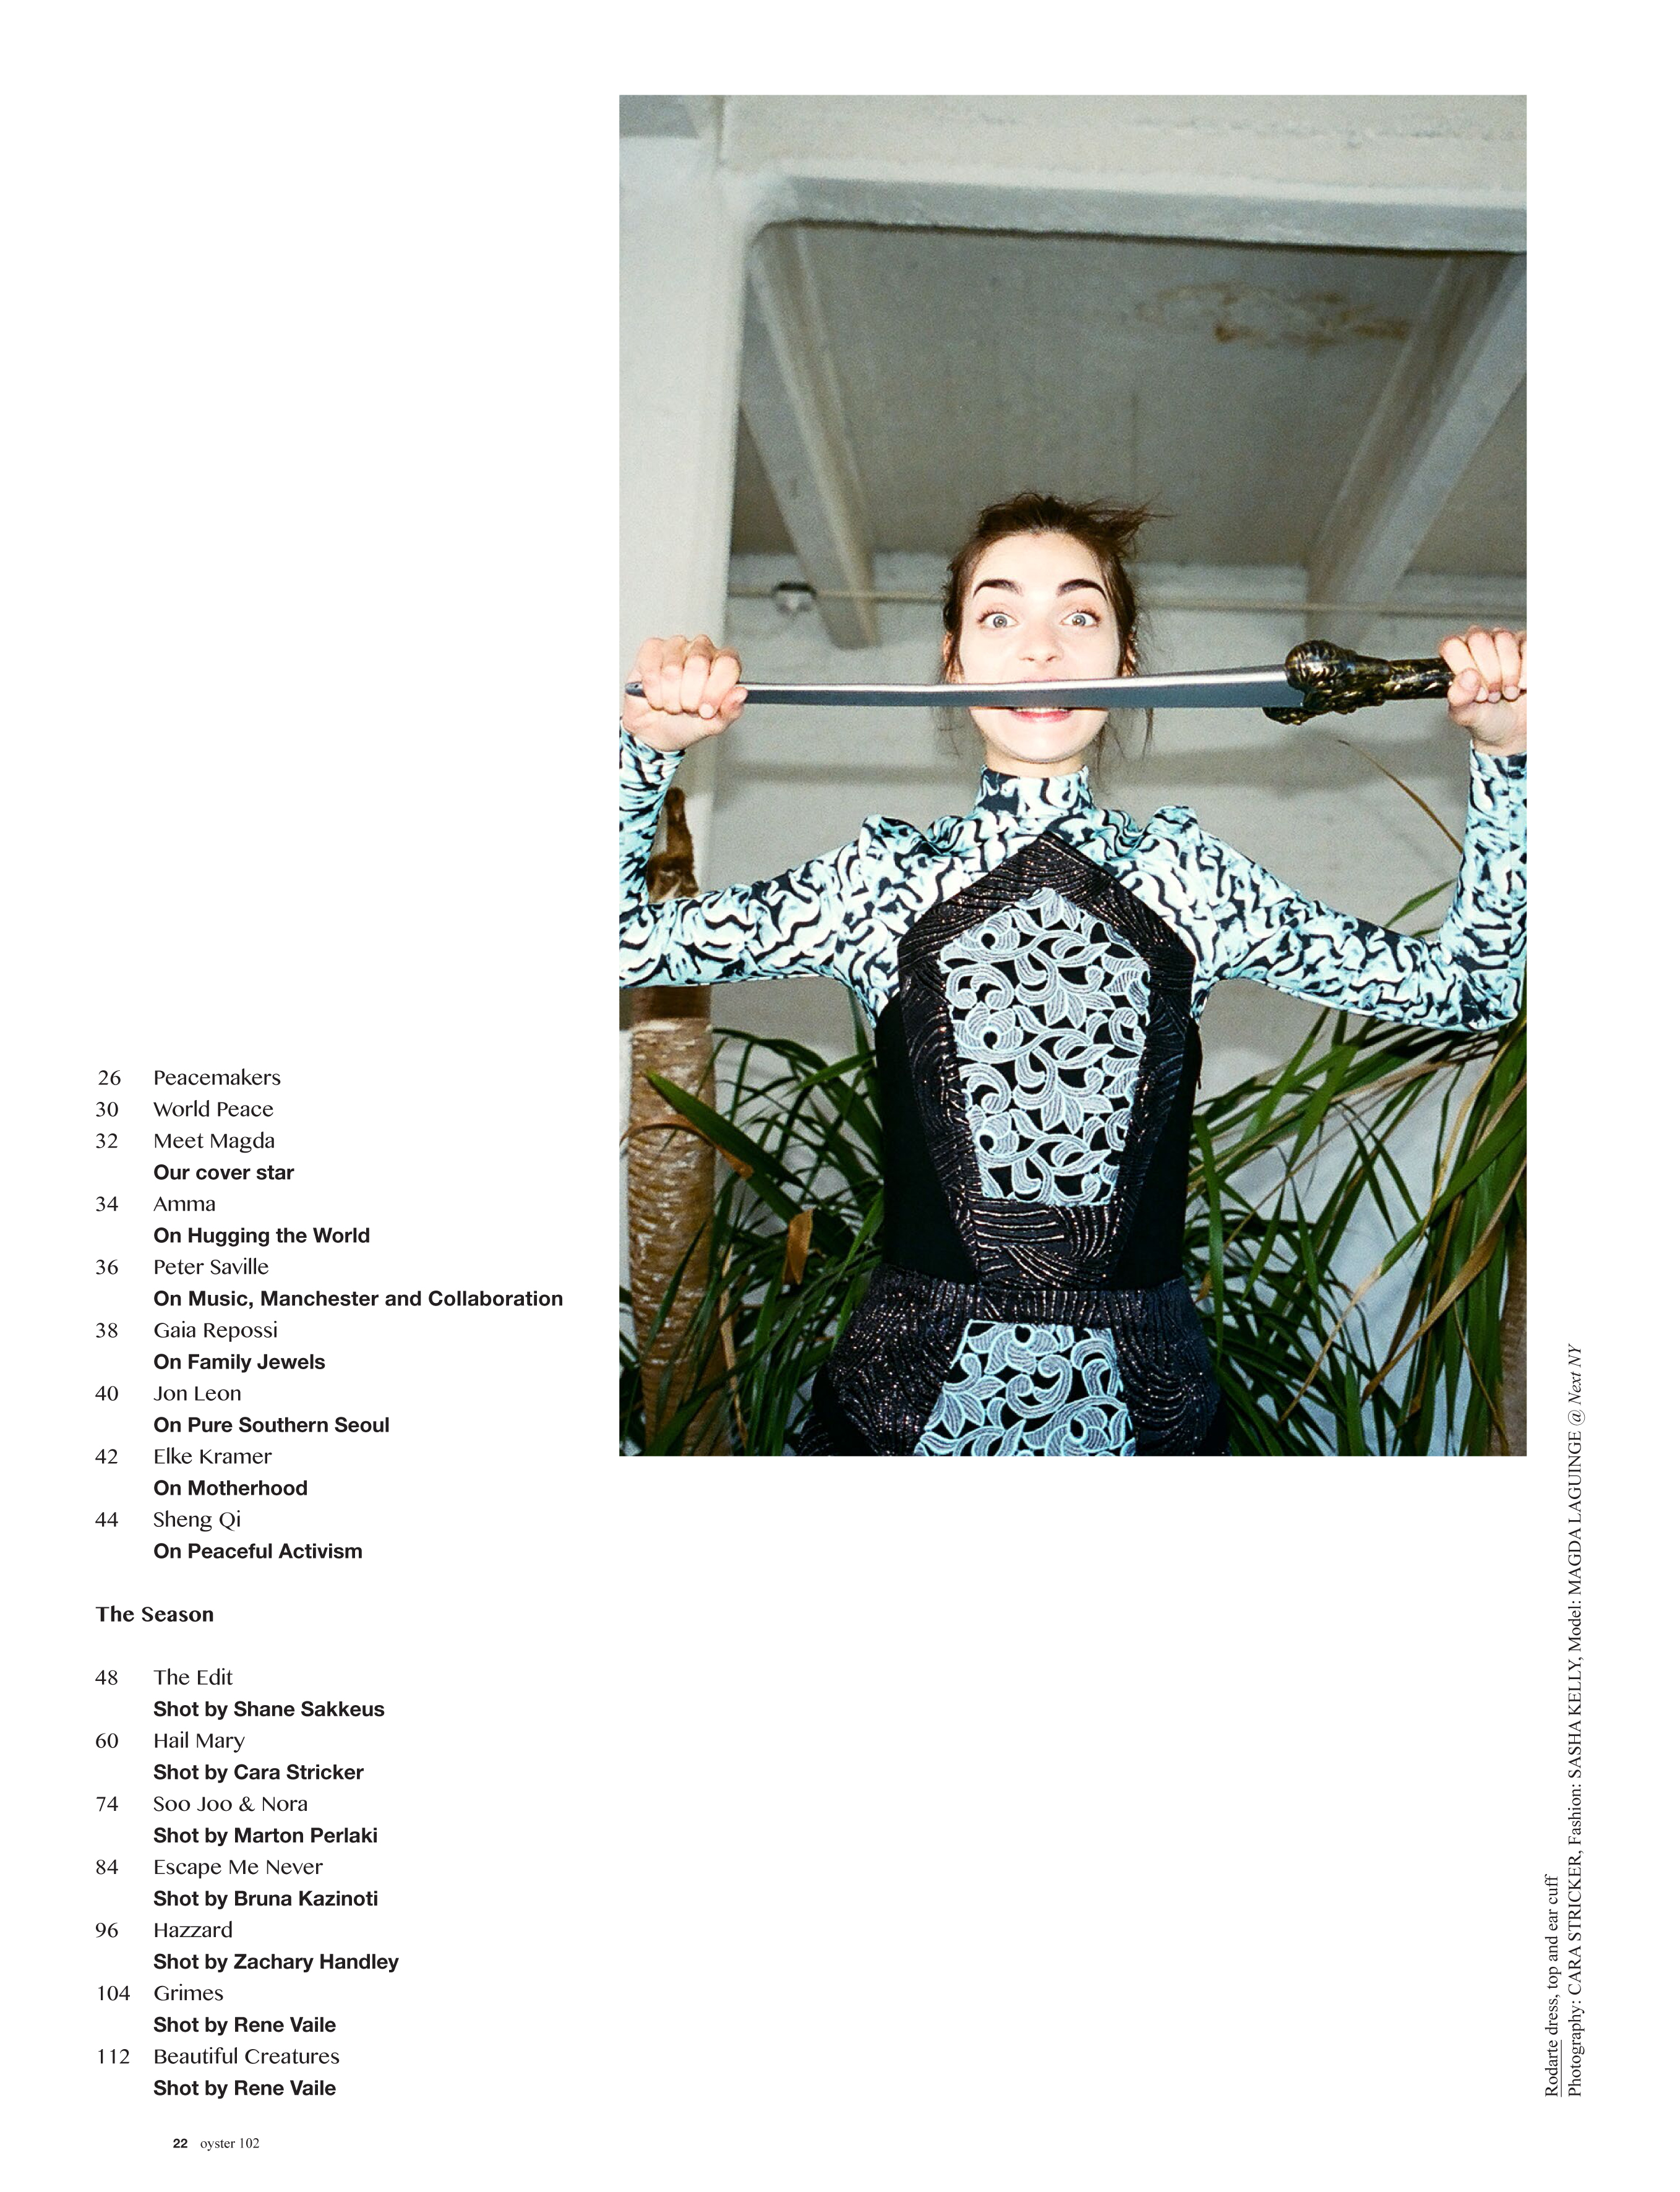 0011_Contents-1